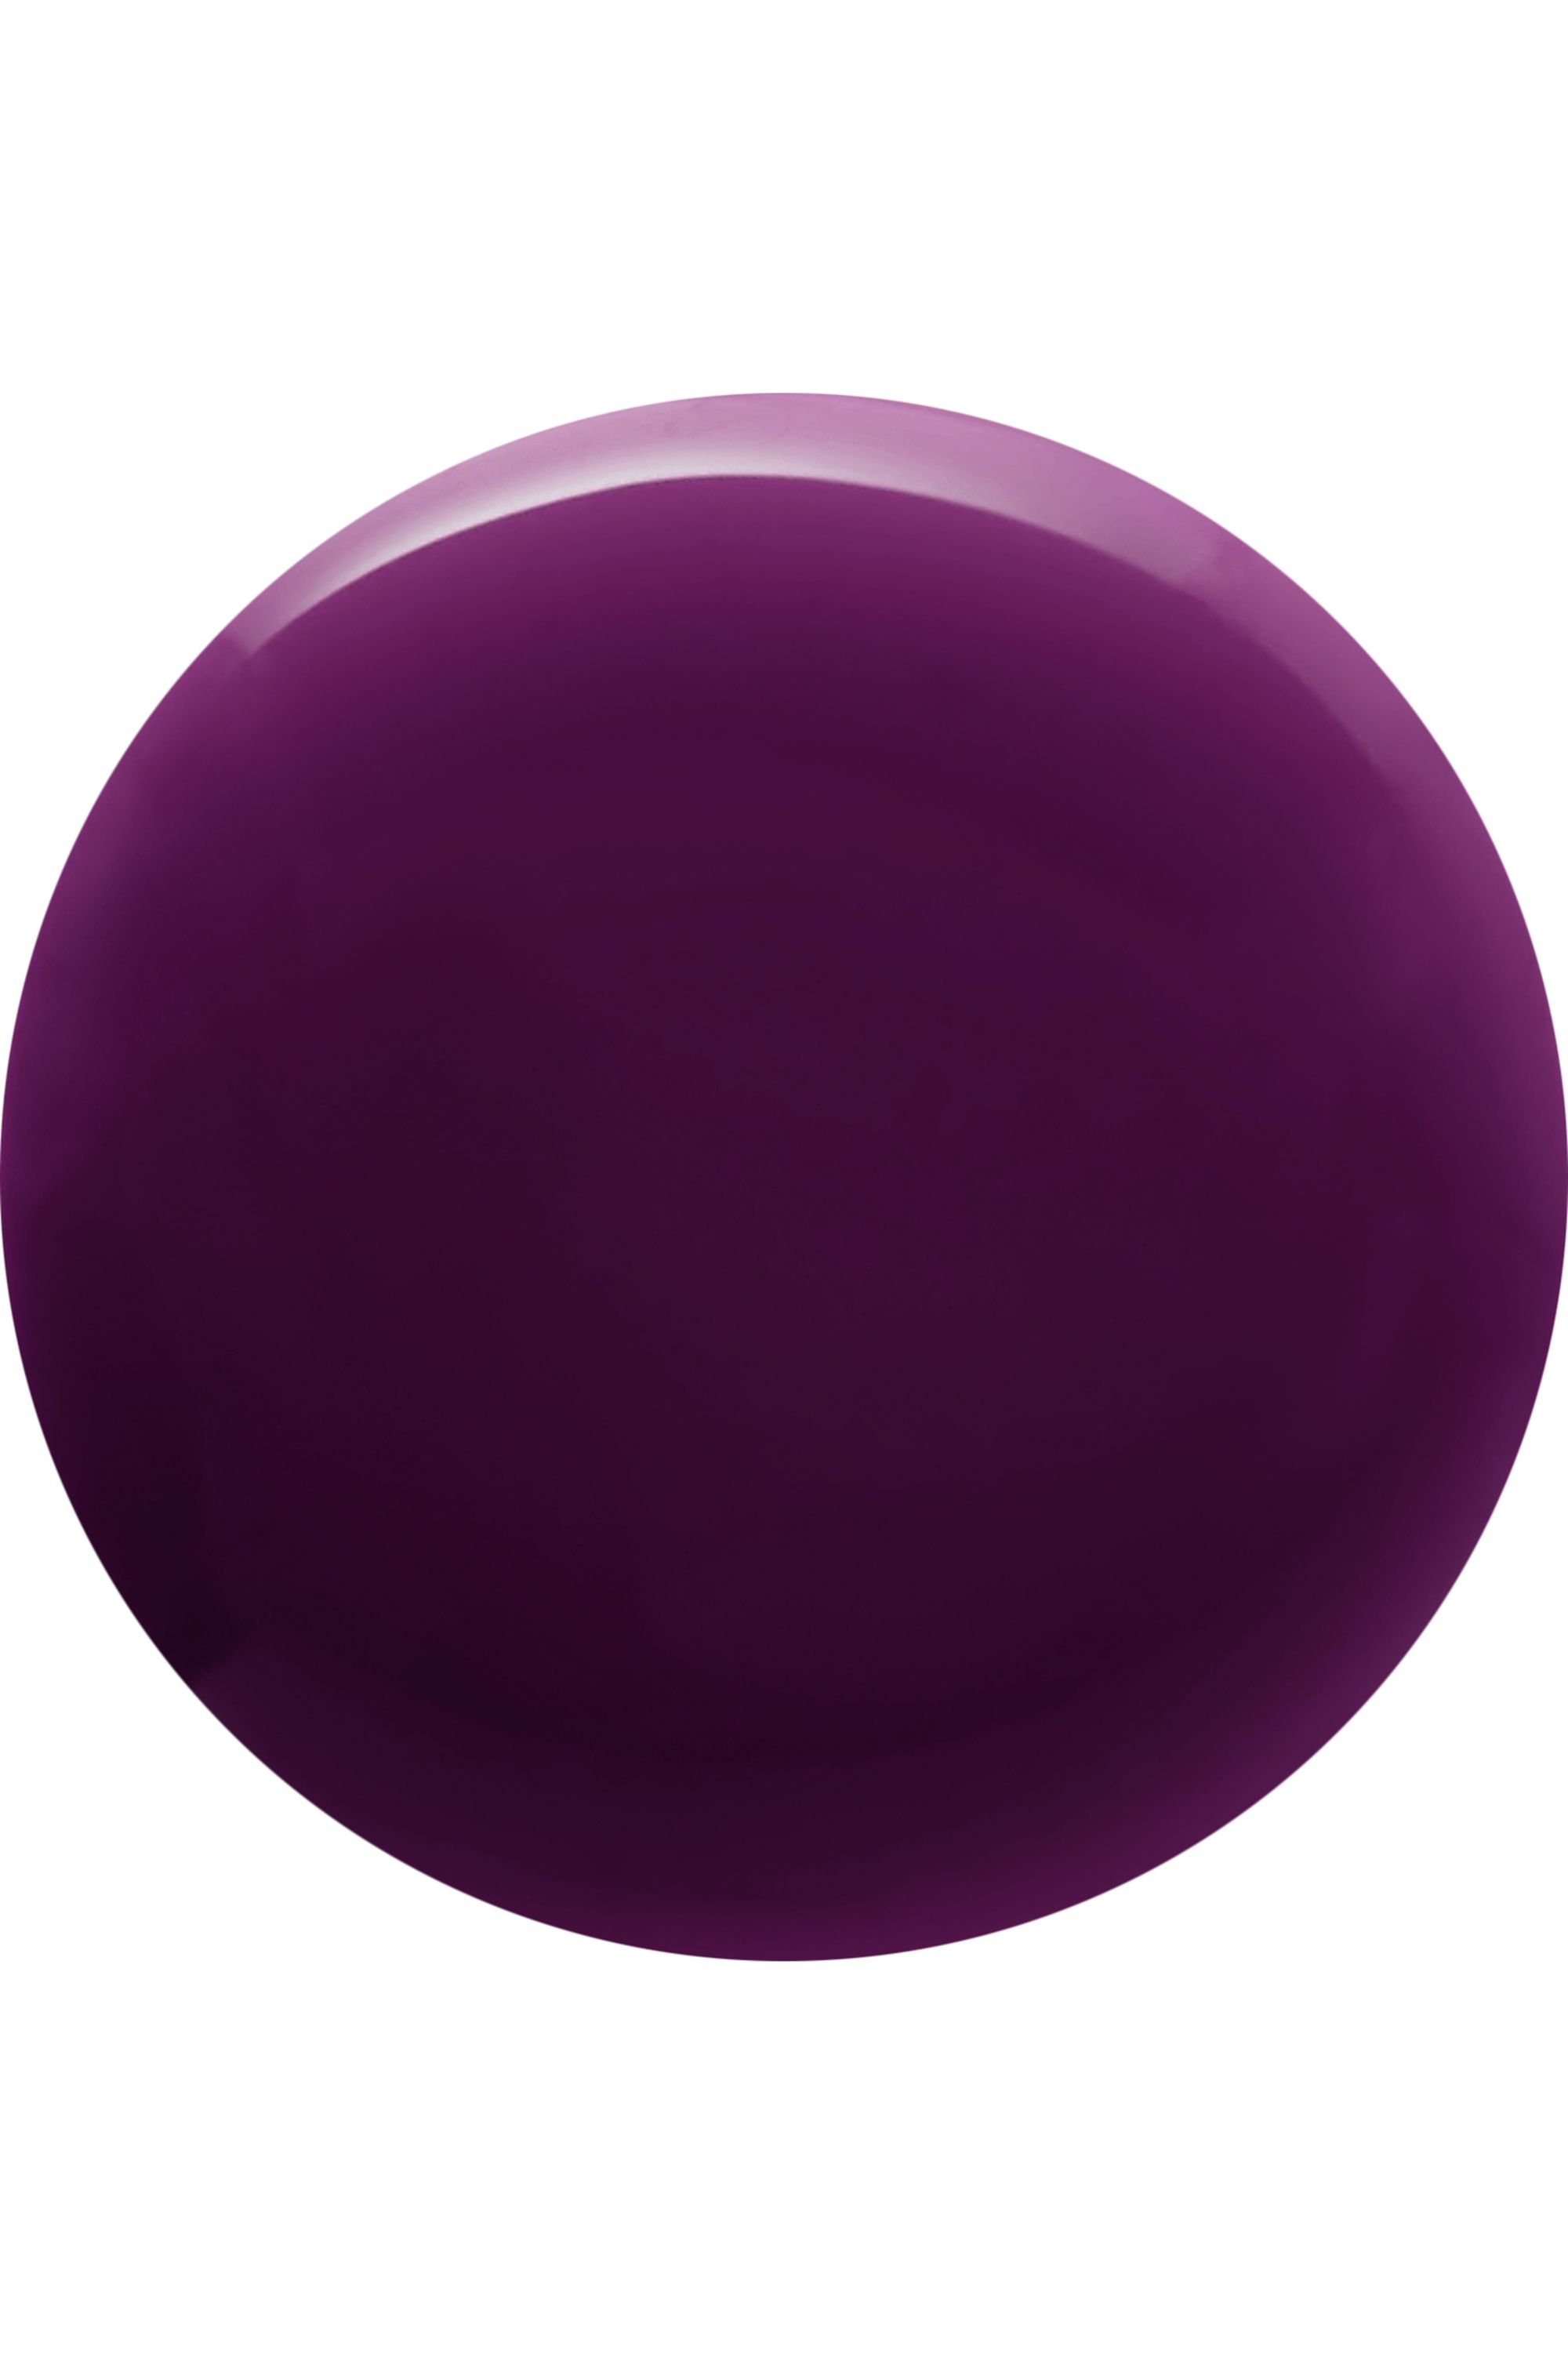 Oribe The Lacquer High Shine Nail Polish - The Violet